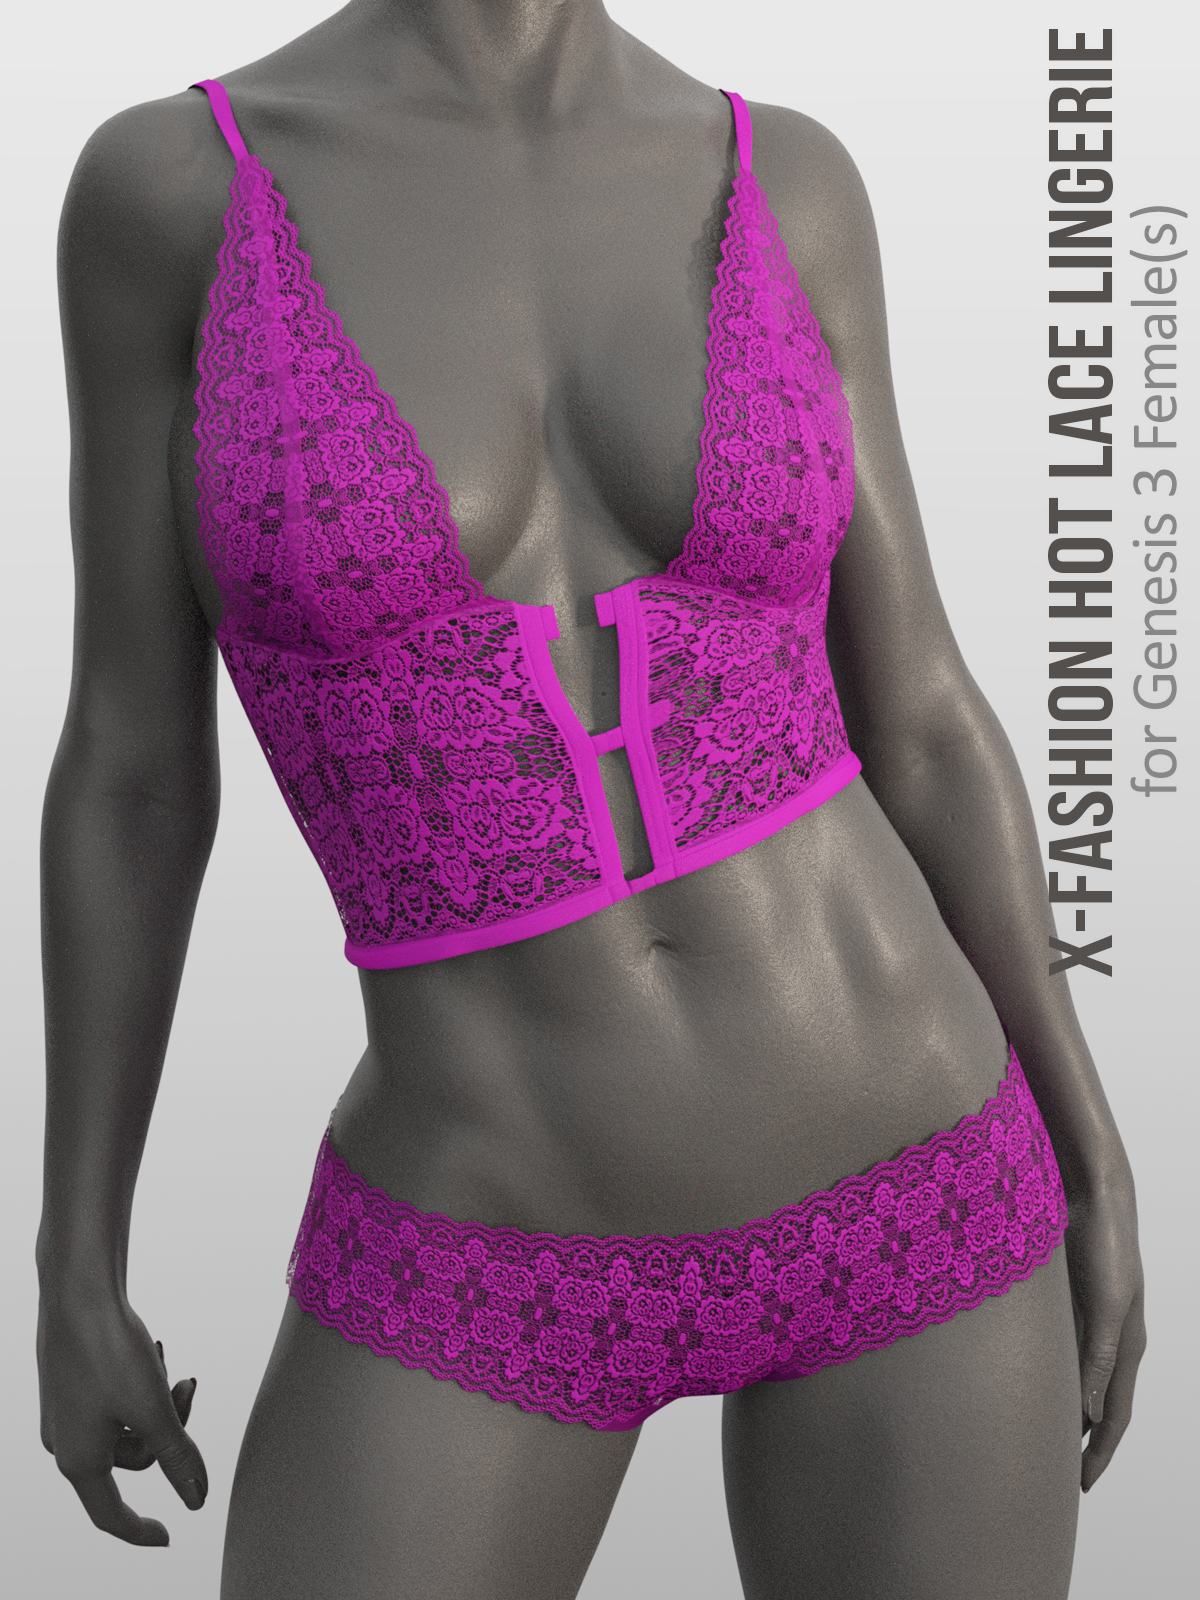 X-Fashion Hot Lace Lingerie for Genesis 8 Females